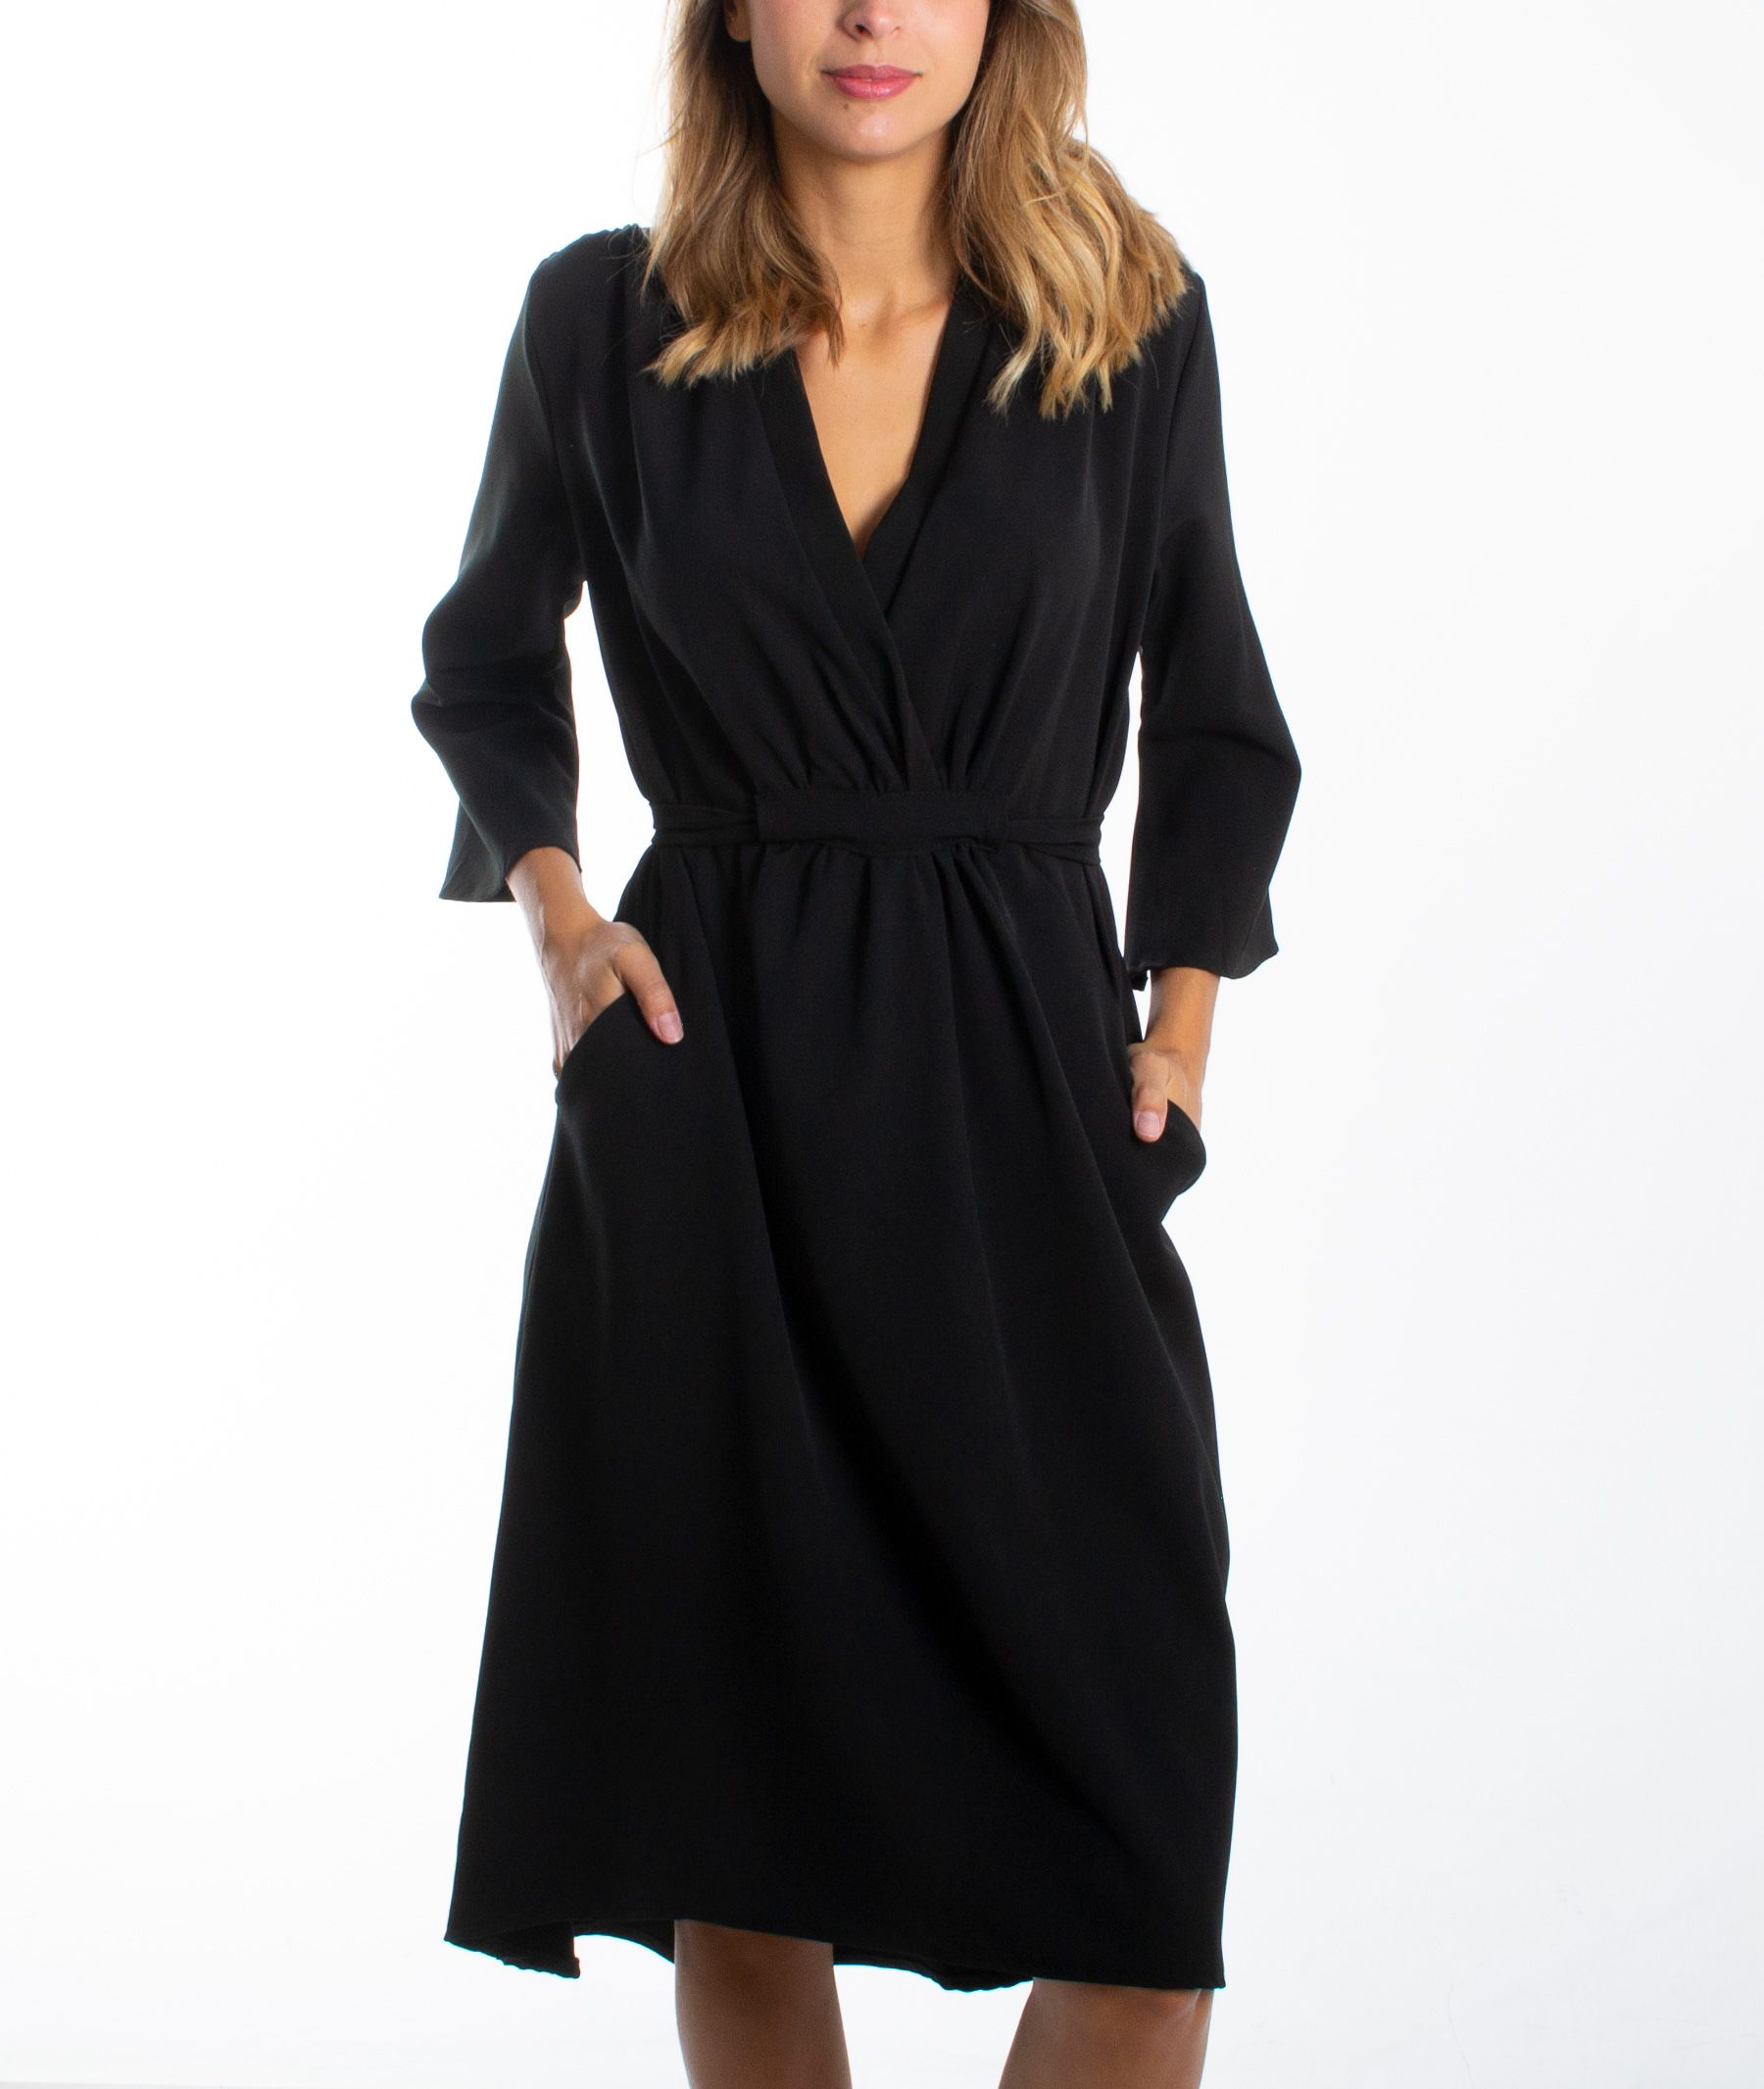 robe noire Carnaby mode pour femmes